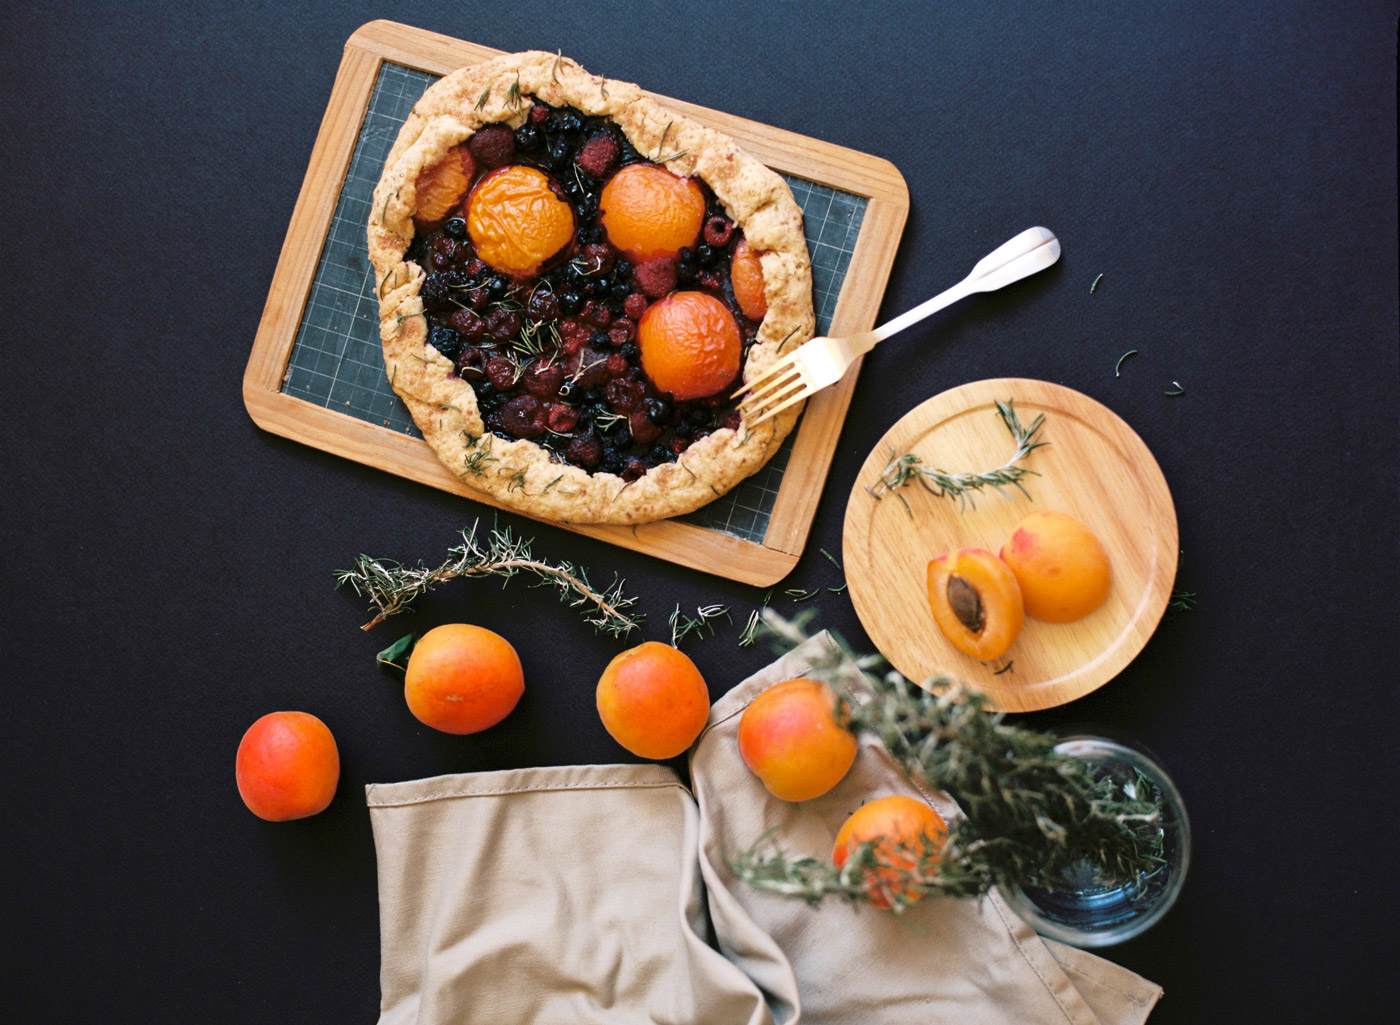 Blanccoco_Rustic_pie_styliste_photographe_culinaire-23